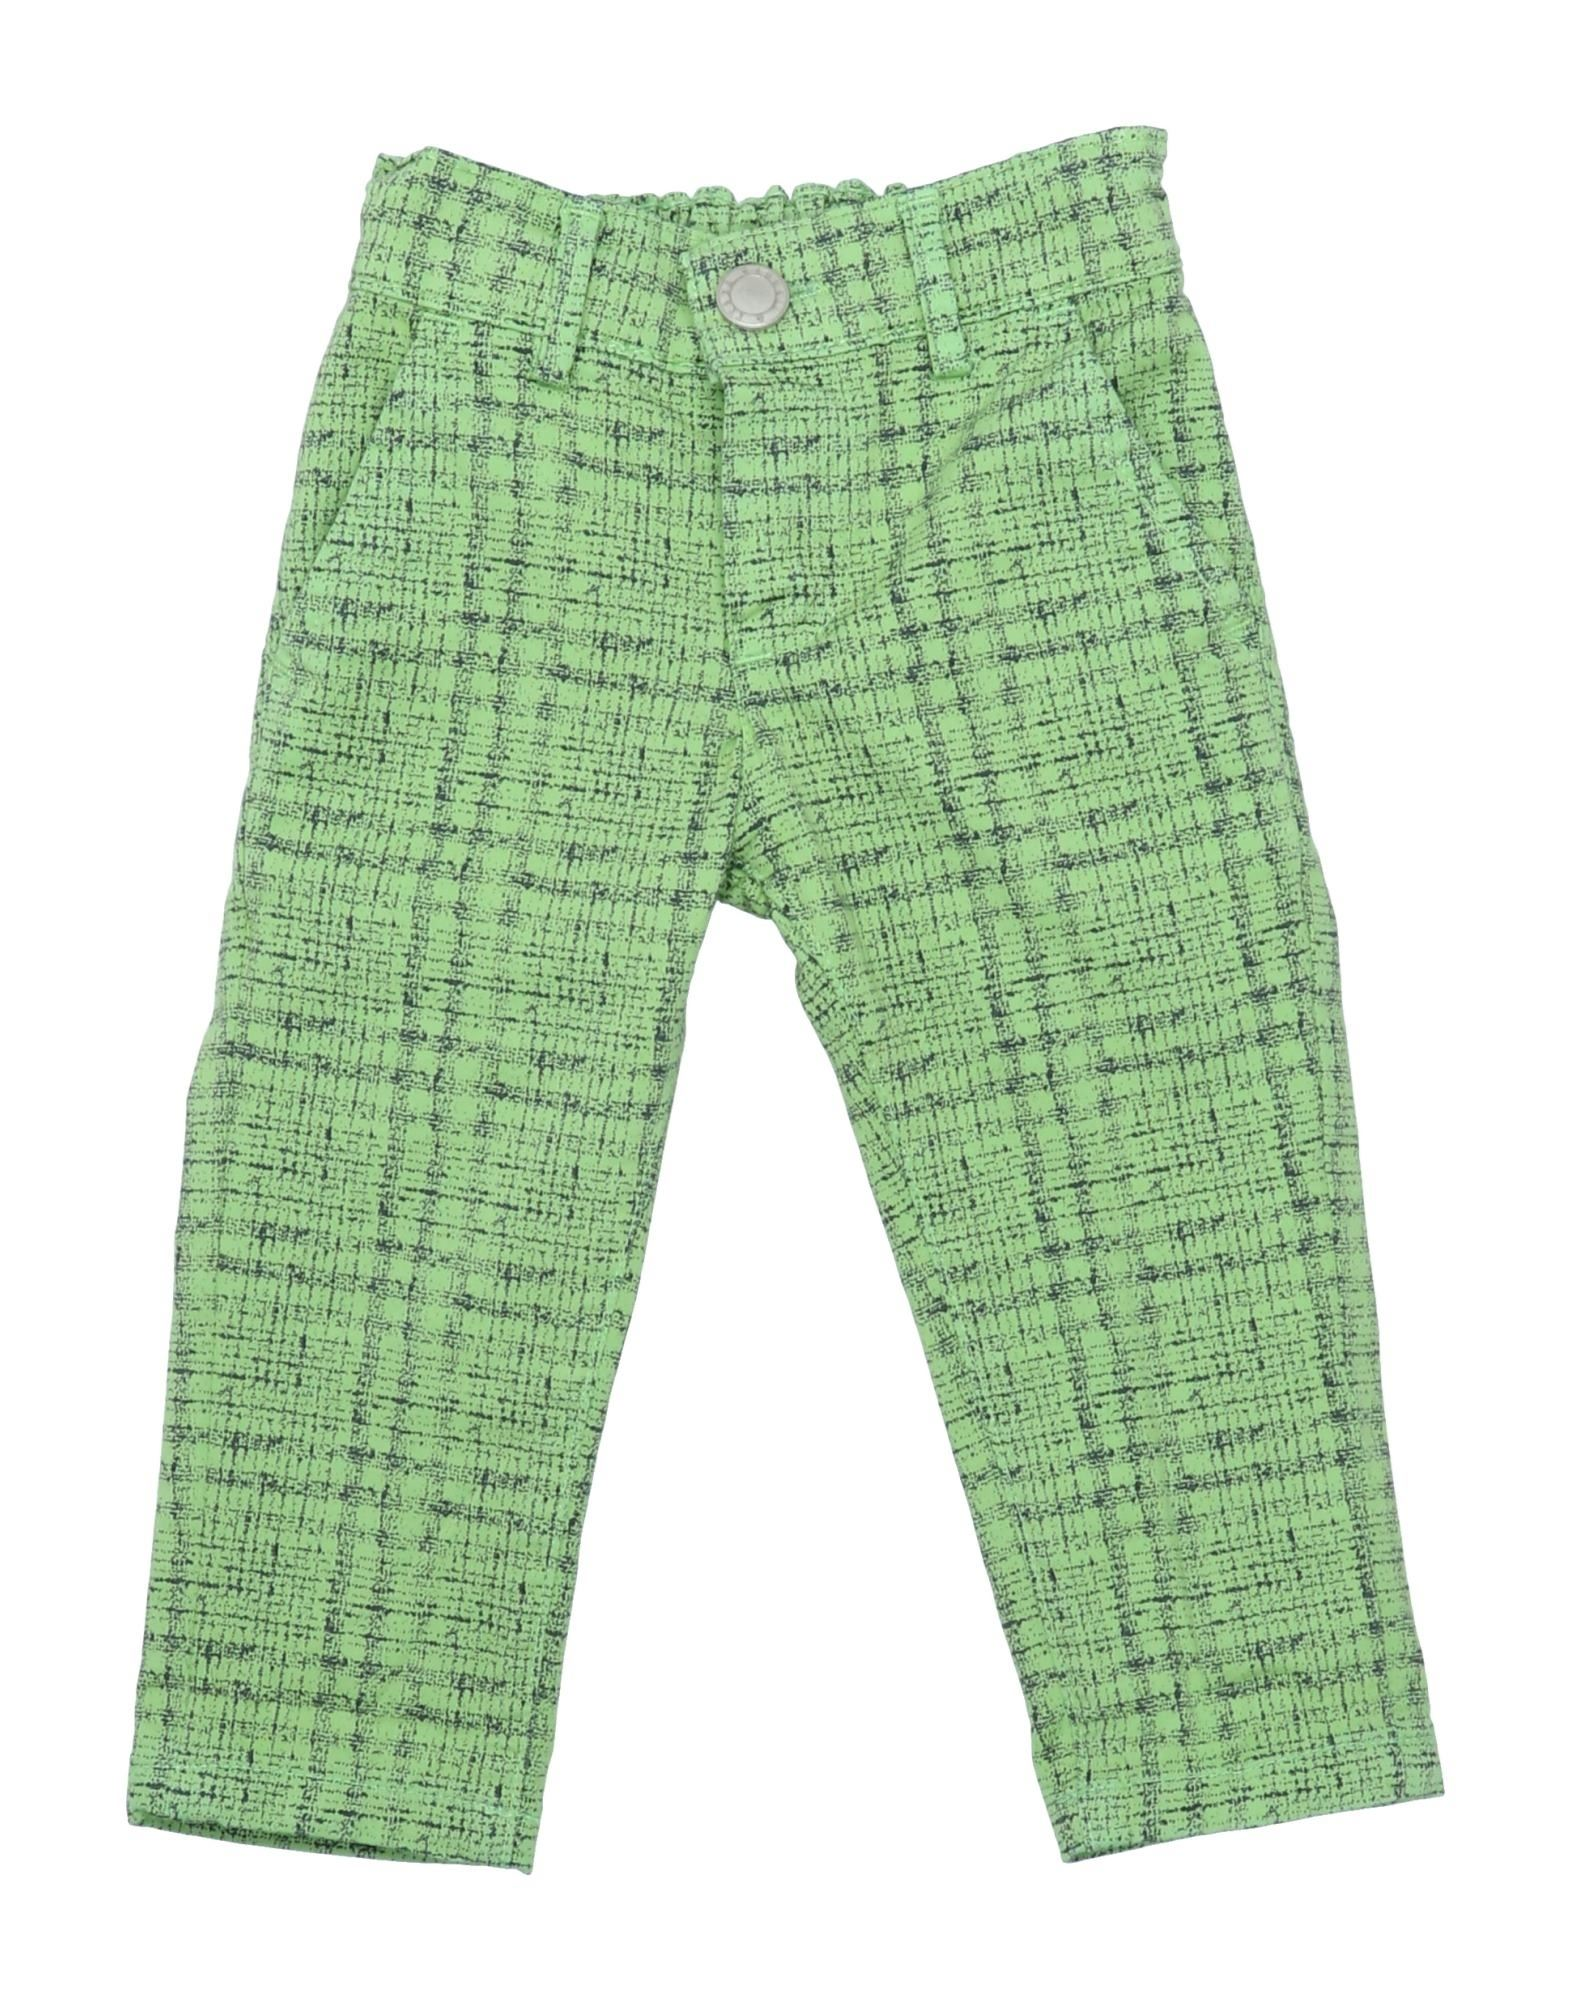 Manuell & Frank Kids' Casual Pants In Green